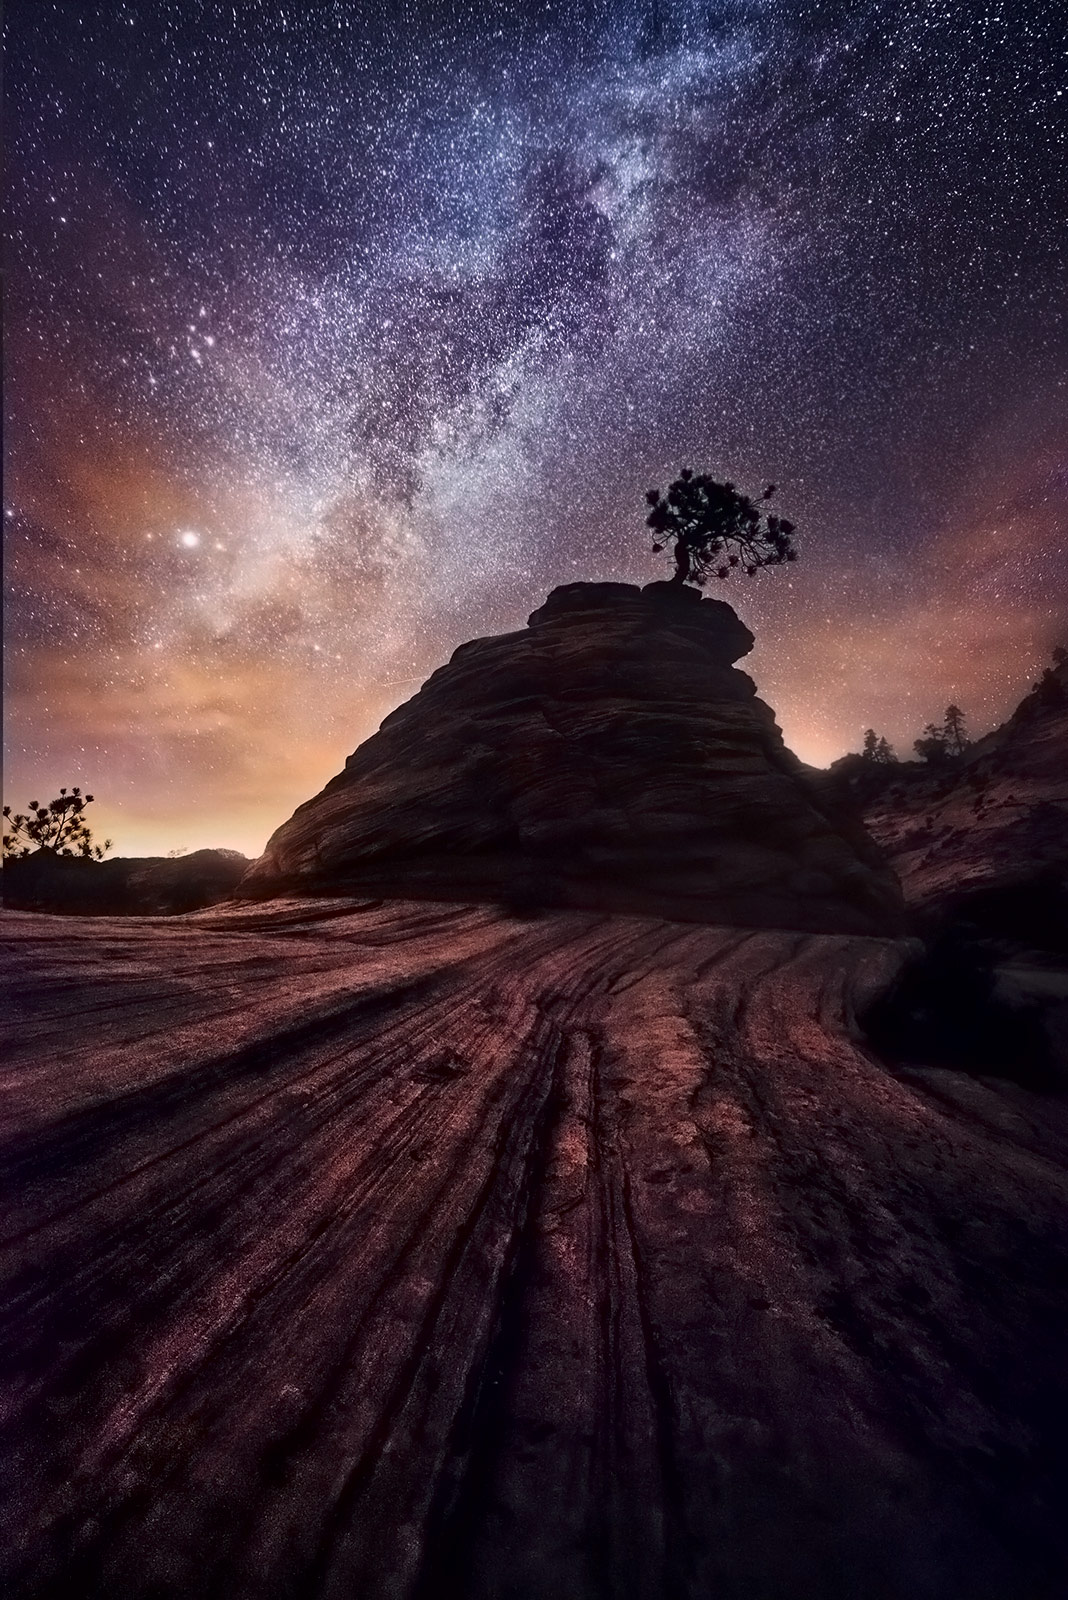 Zion, Checkerboard, Milky Way, Tree, Lone, Night, Surreal, photo